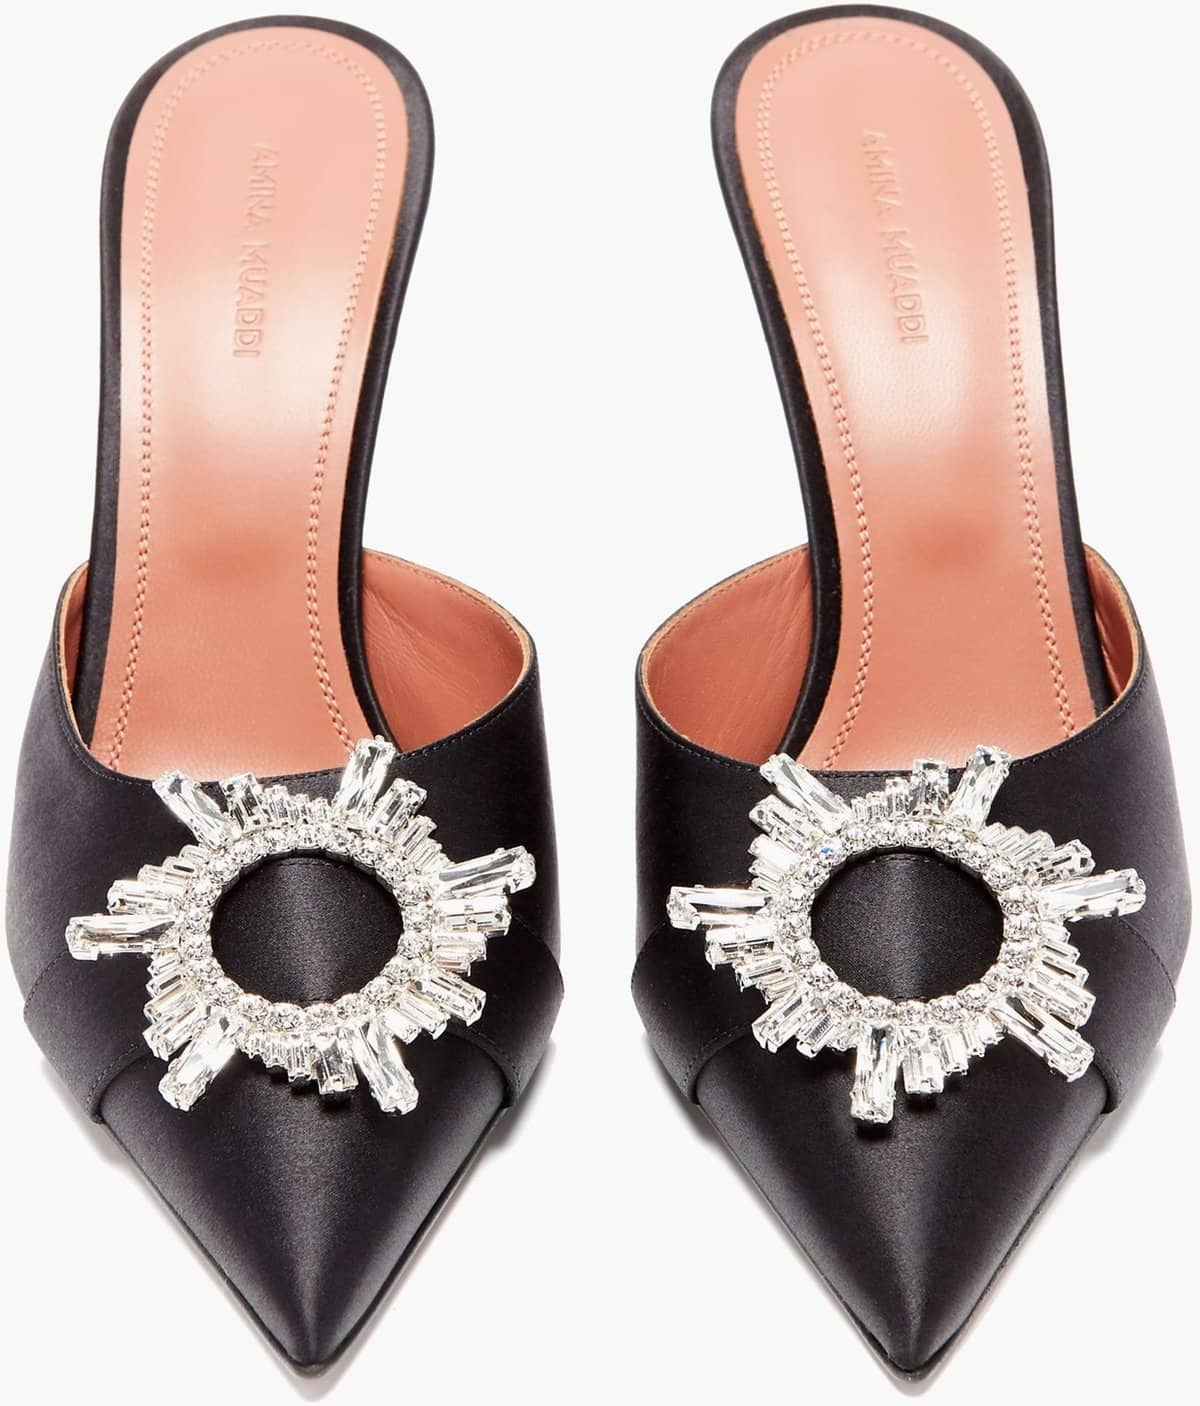 Amina Muaddi's black Begum mules are embellished with crystal buckles for an opulent mood